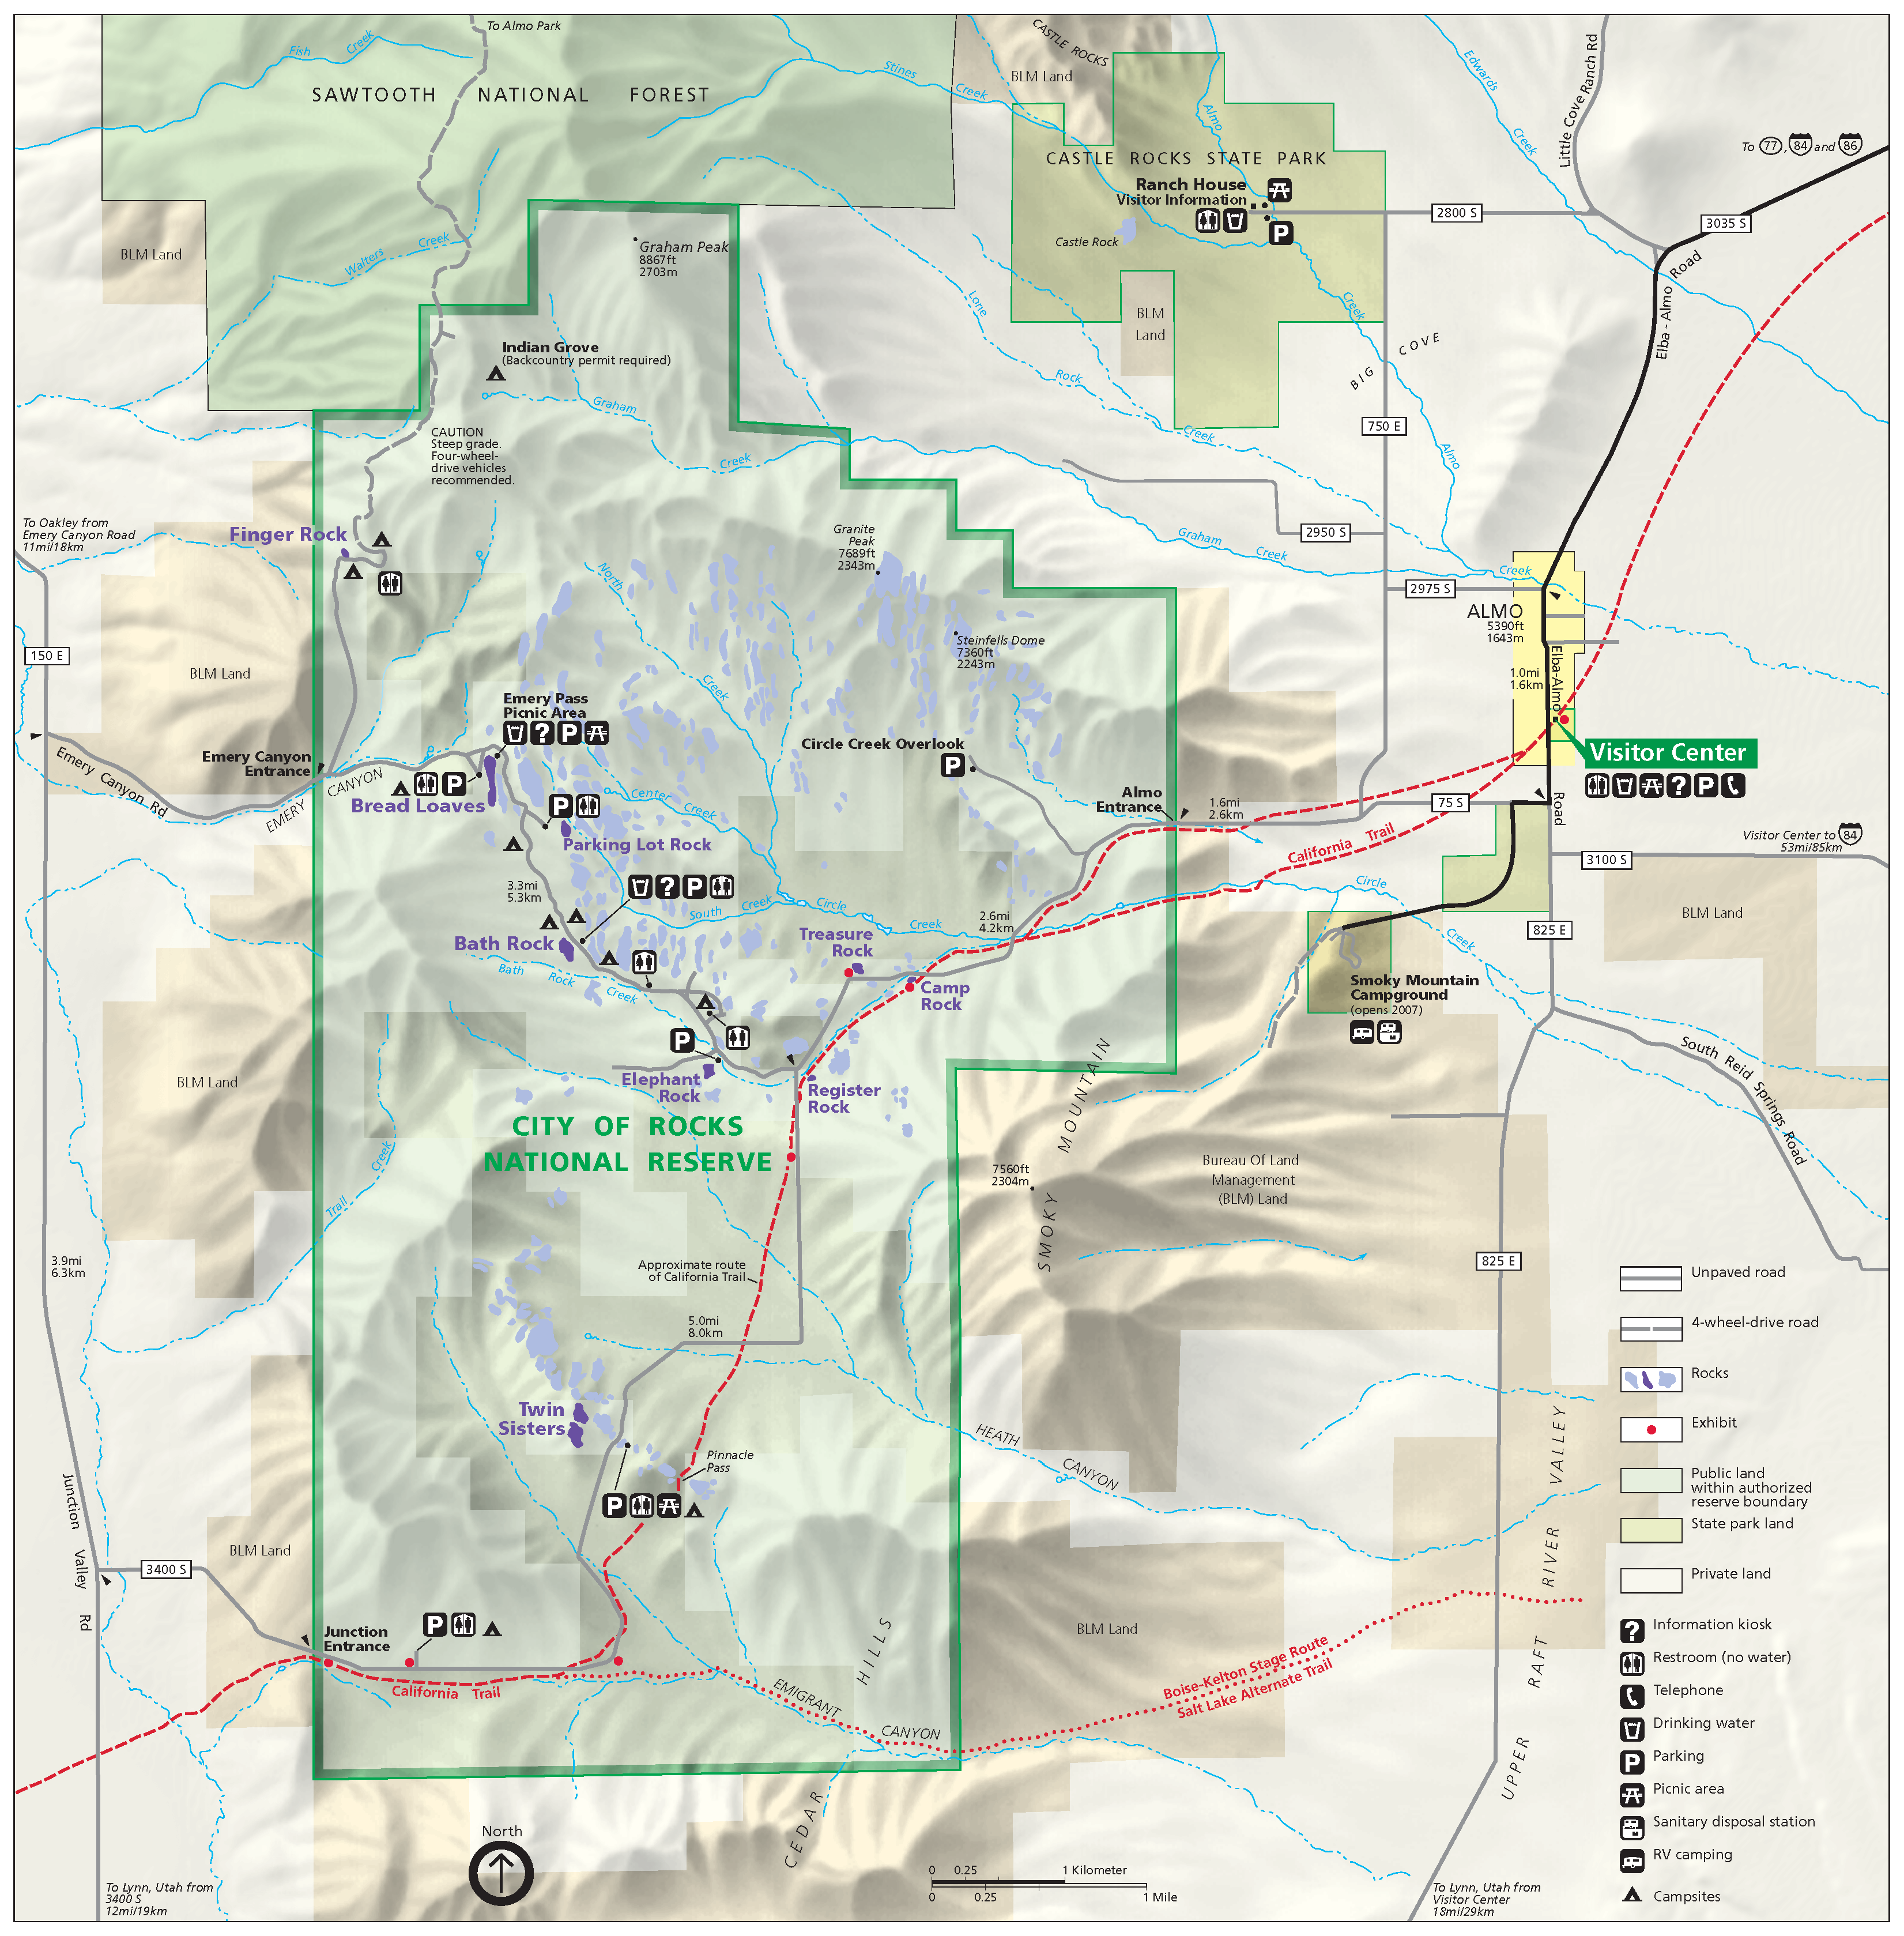 File:City of Rocks National Reserve map 2006.07.png   Wikimedia